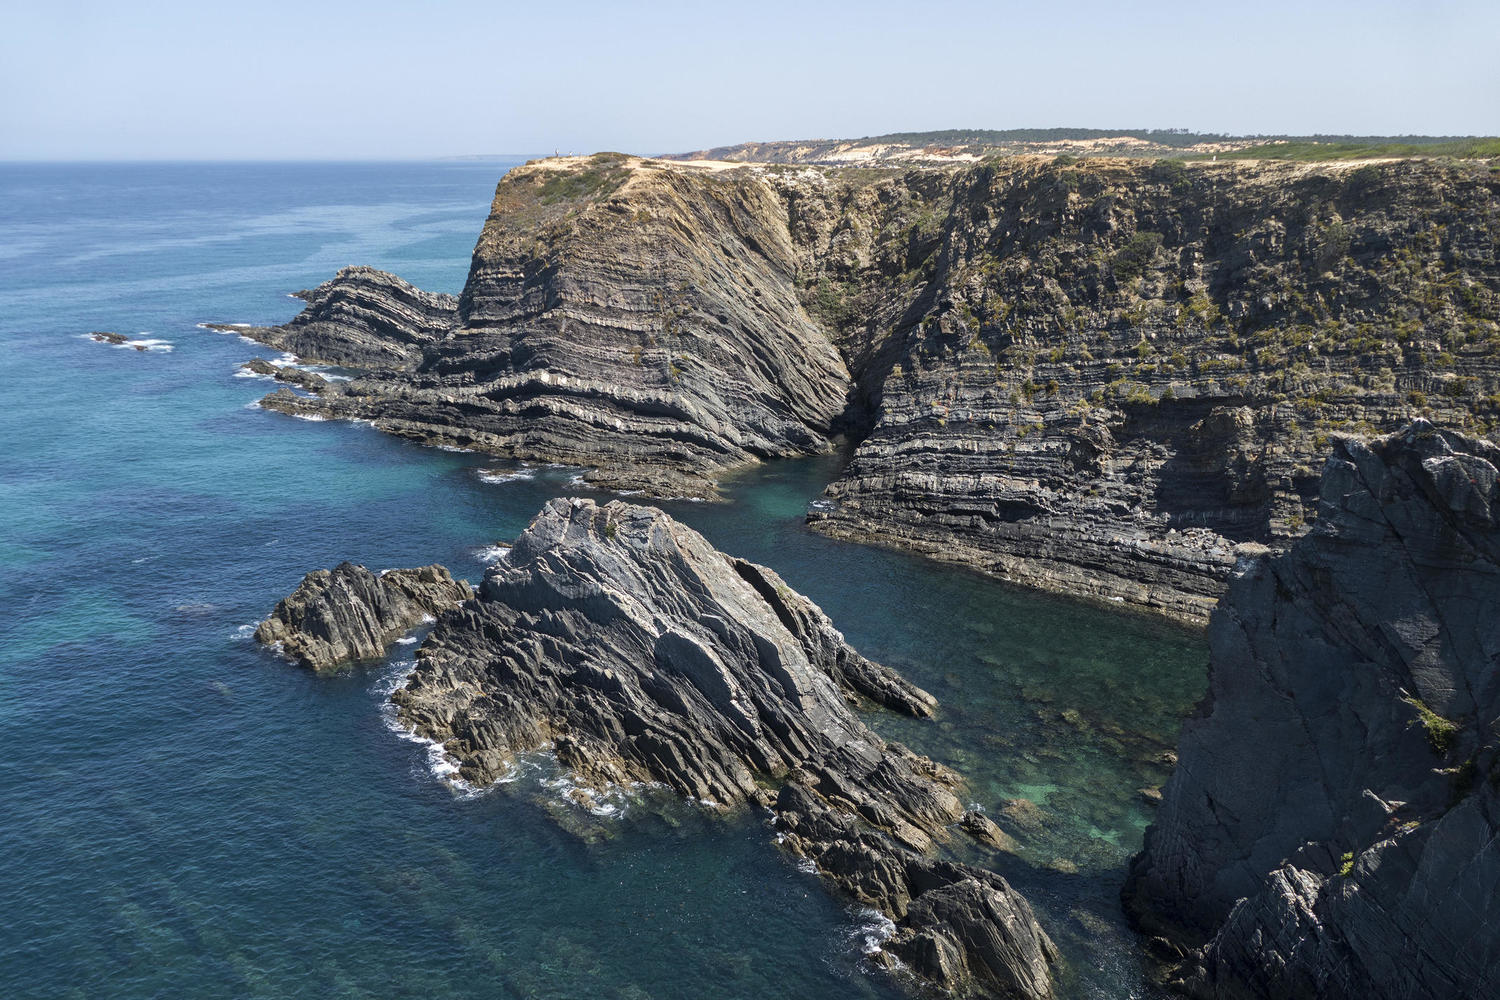 Dramatic cliffs on the Alentejo coast